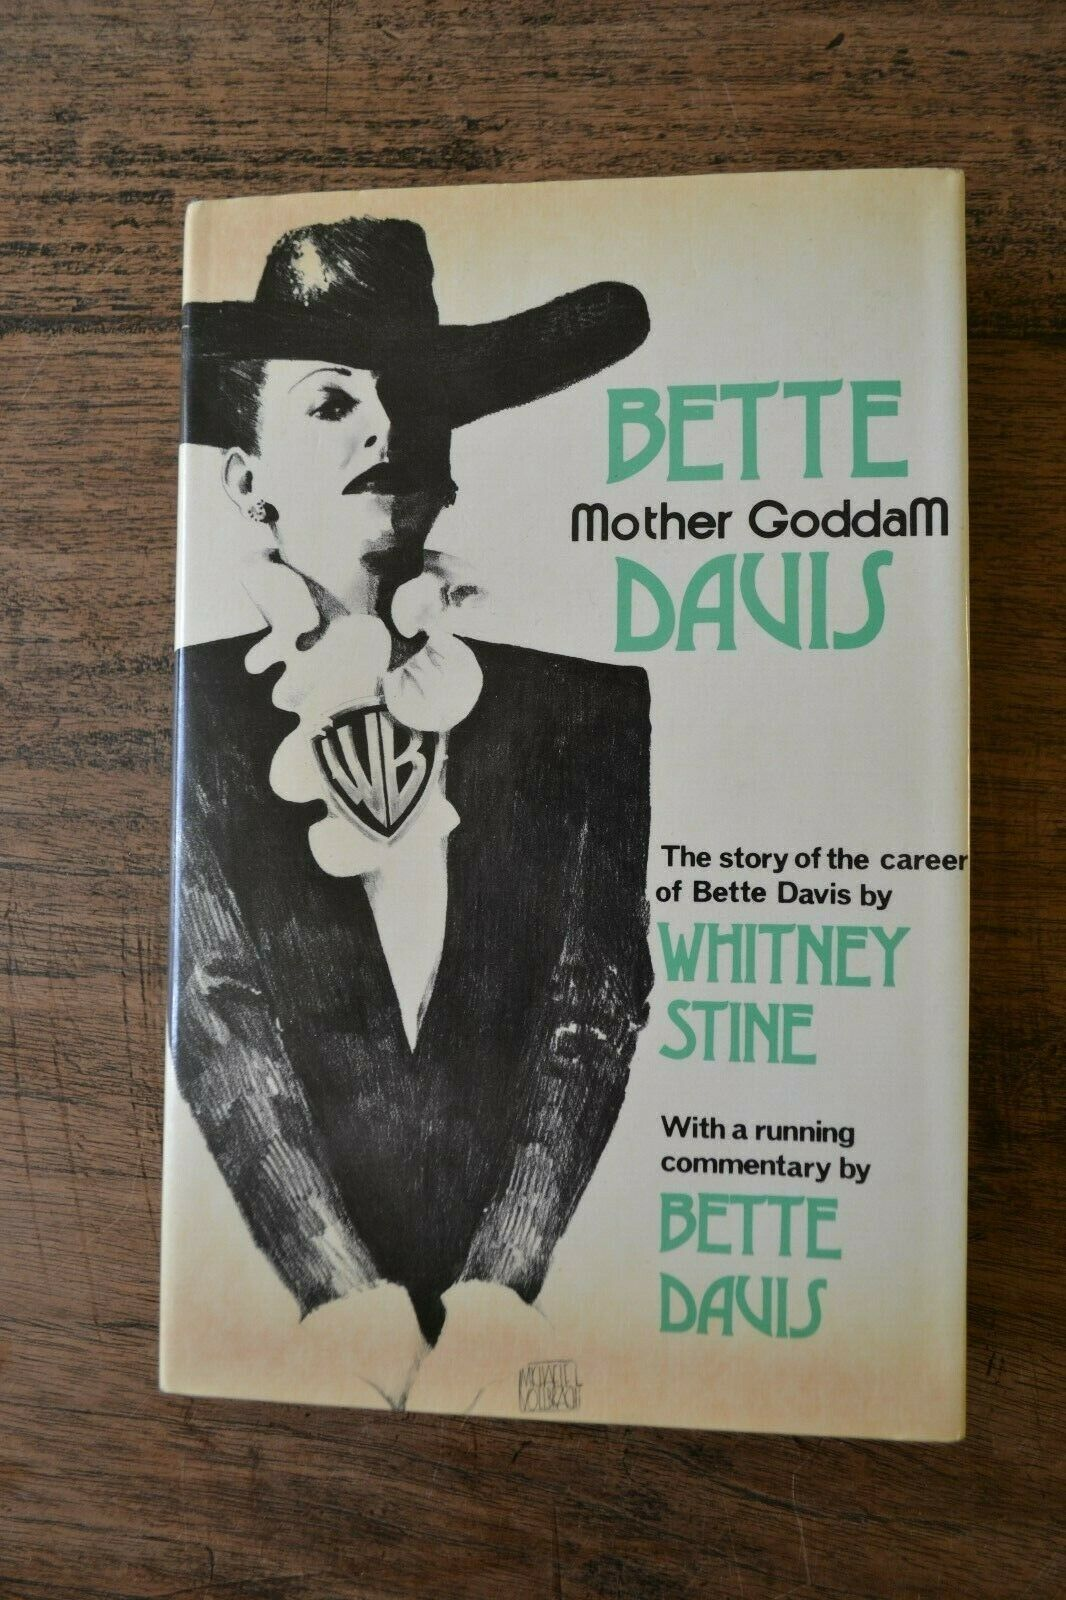 This Is An Original 1st British Edition Hardback Copy Of Mother Goddam The Story Of The Career Of Bette Davis By Whitney Stine Bette Davis Bette Used Books